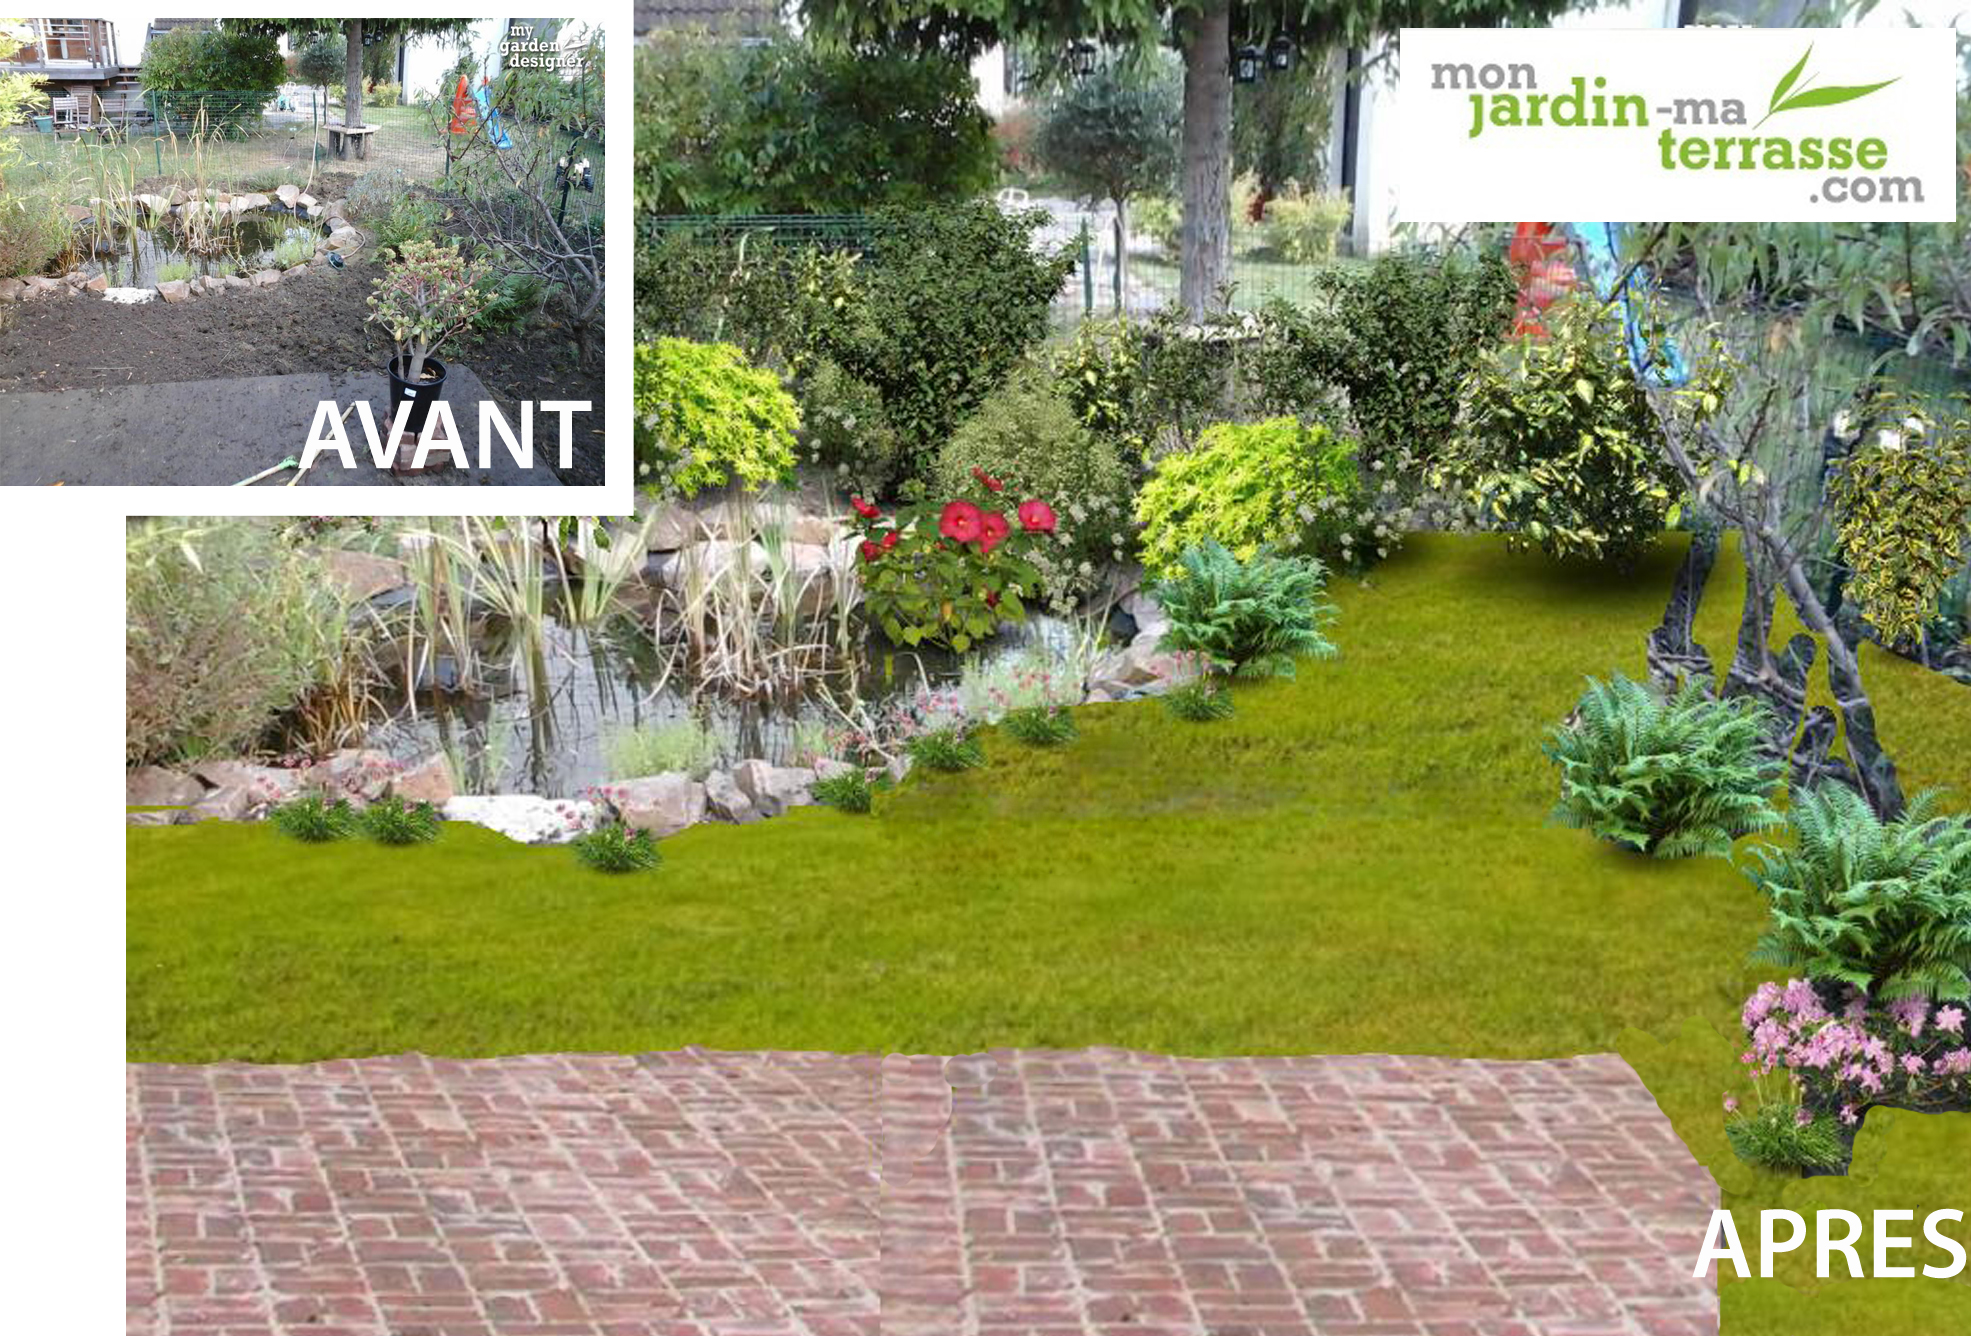 Am nager son bassin de jardin monjardin for Amenager son jardin exterieur